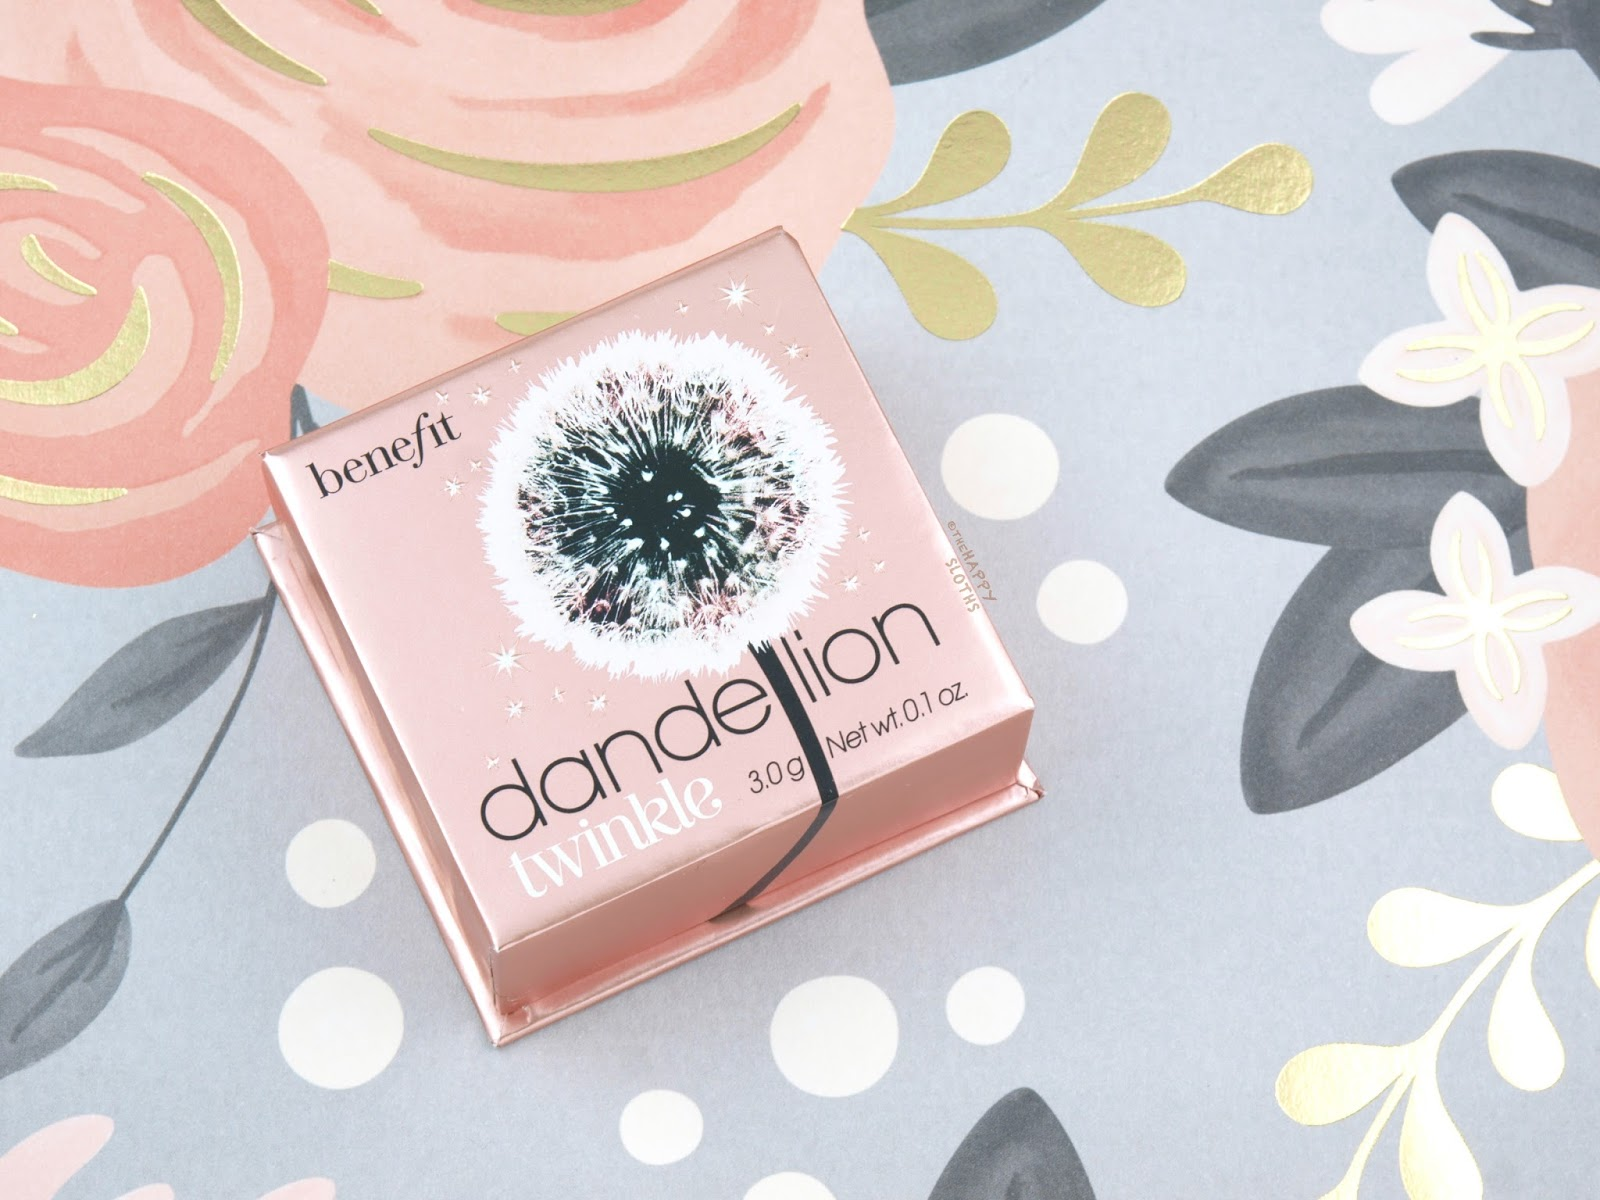 Benefit Dandelion Twinkle Highlighter: Review and Swatches